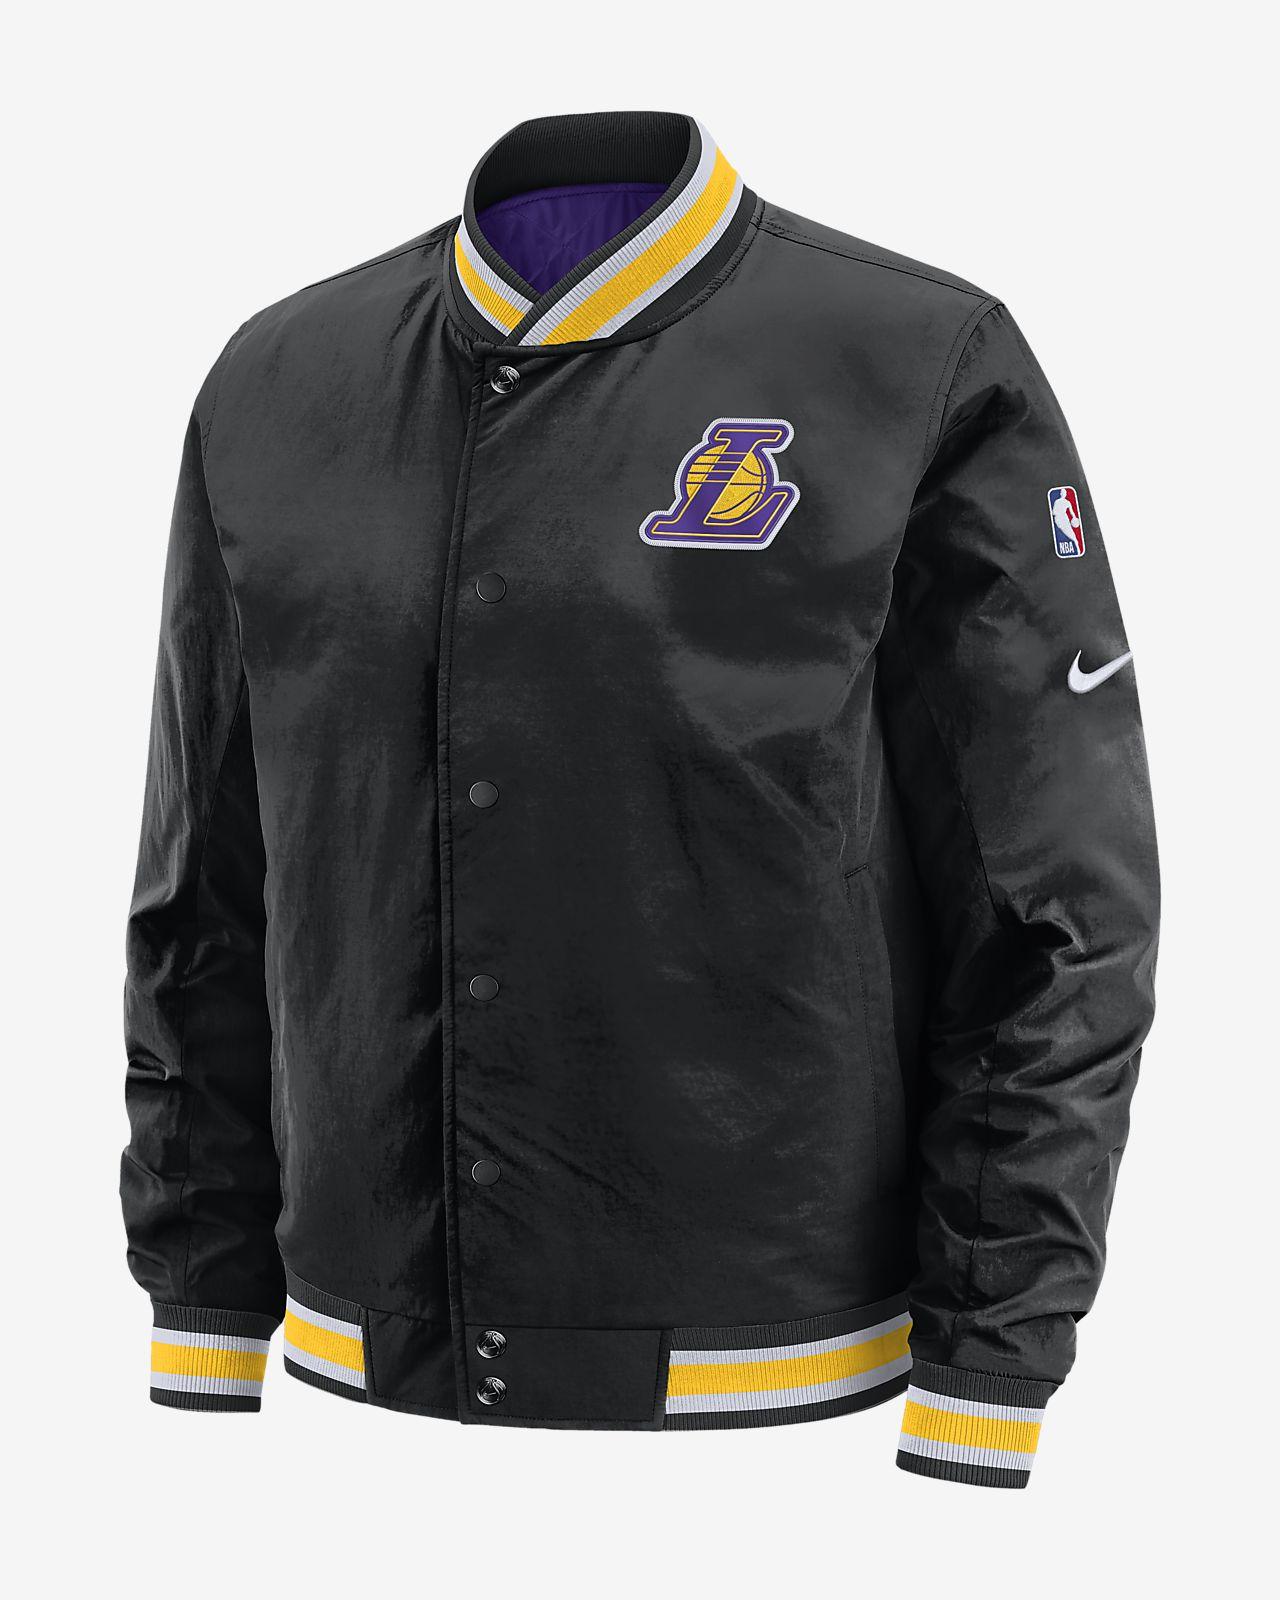 Los Angeles Lakers Courtside Men's Nike NBA Reversible Jacket